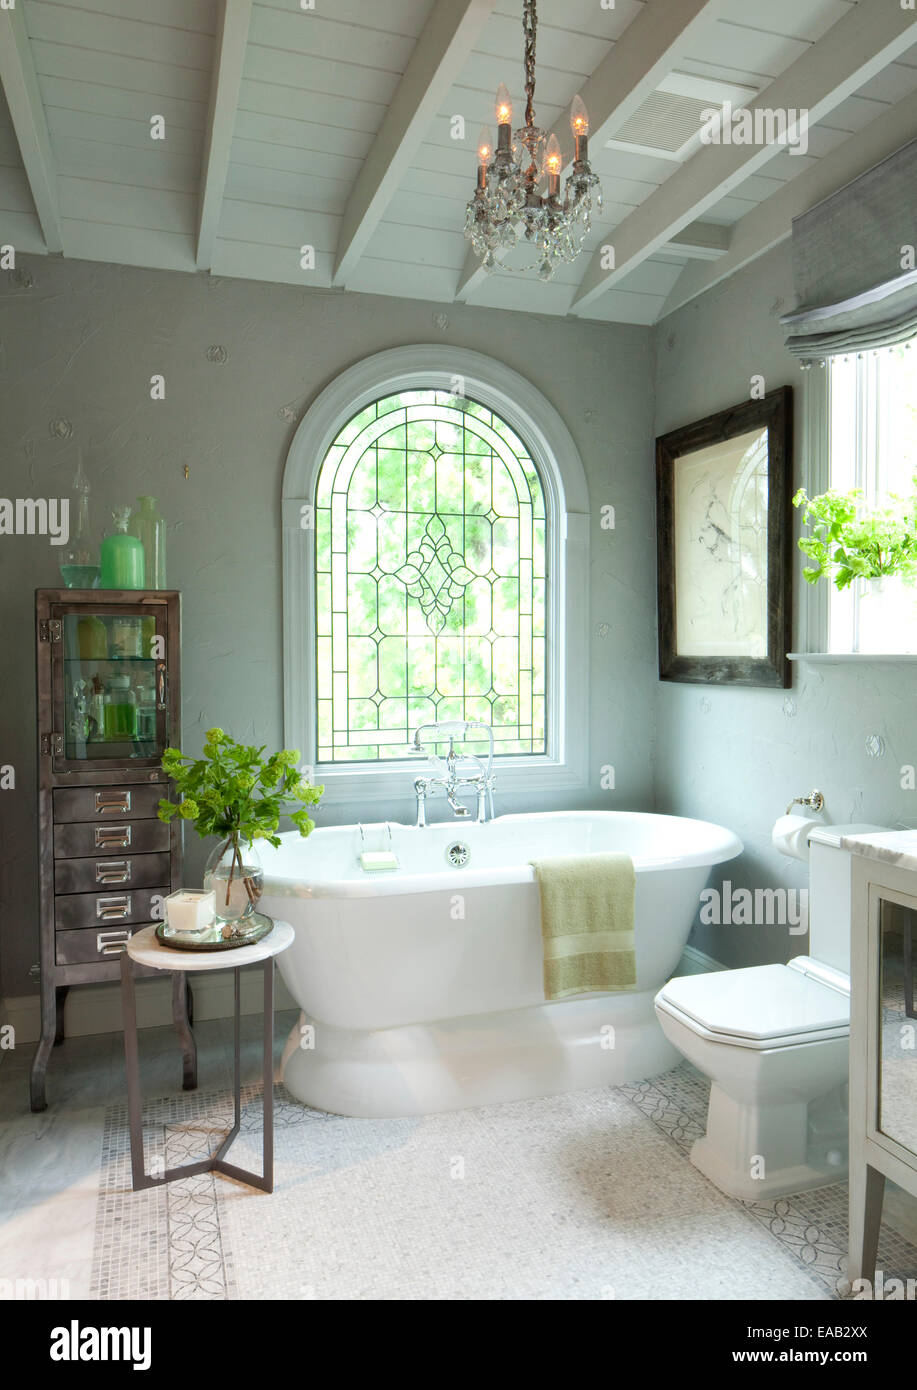 Contemporary bathroom with large window and ceramic tub. - Stock Image